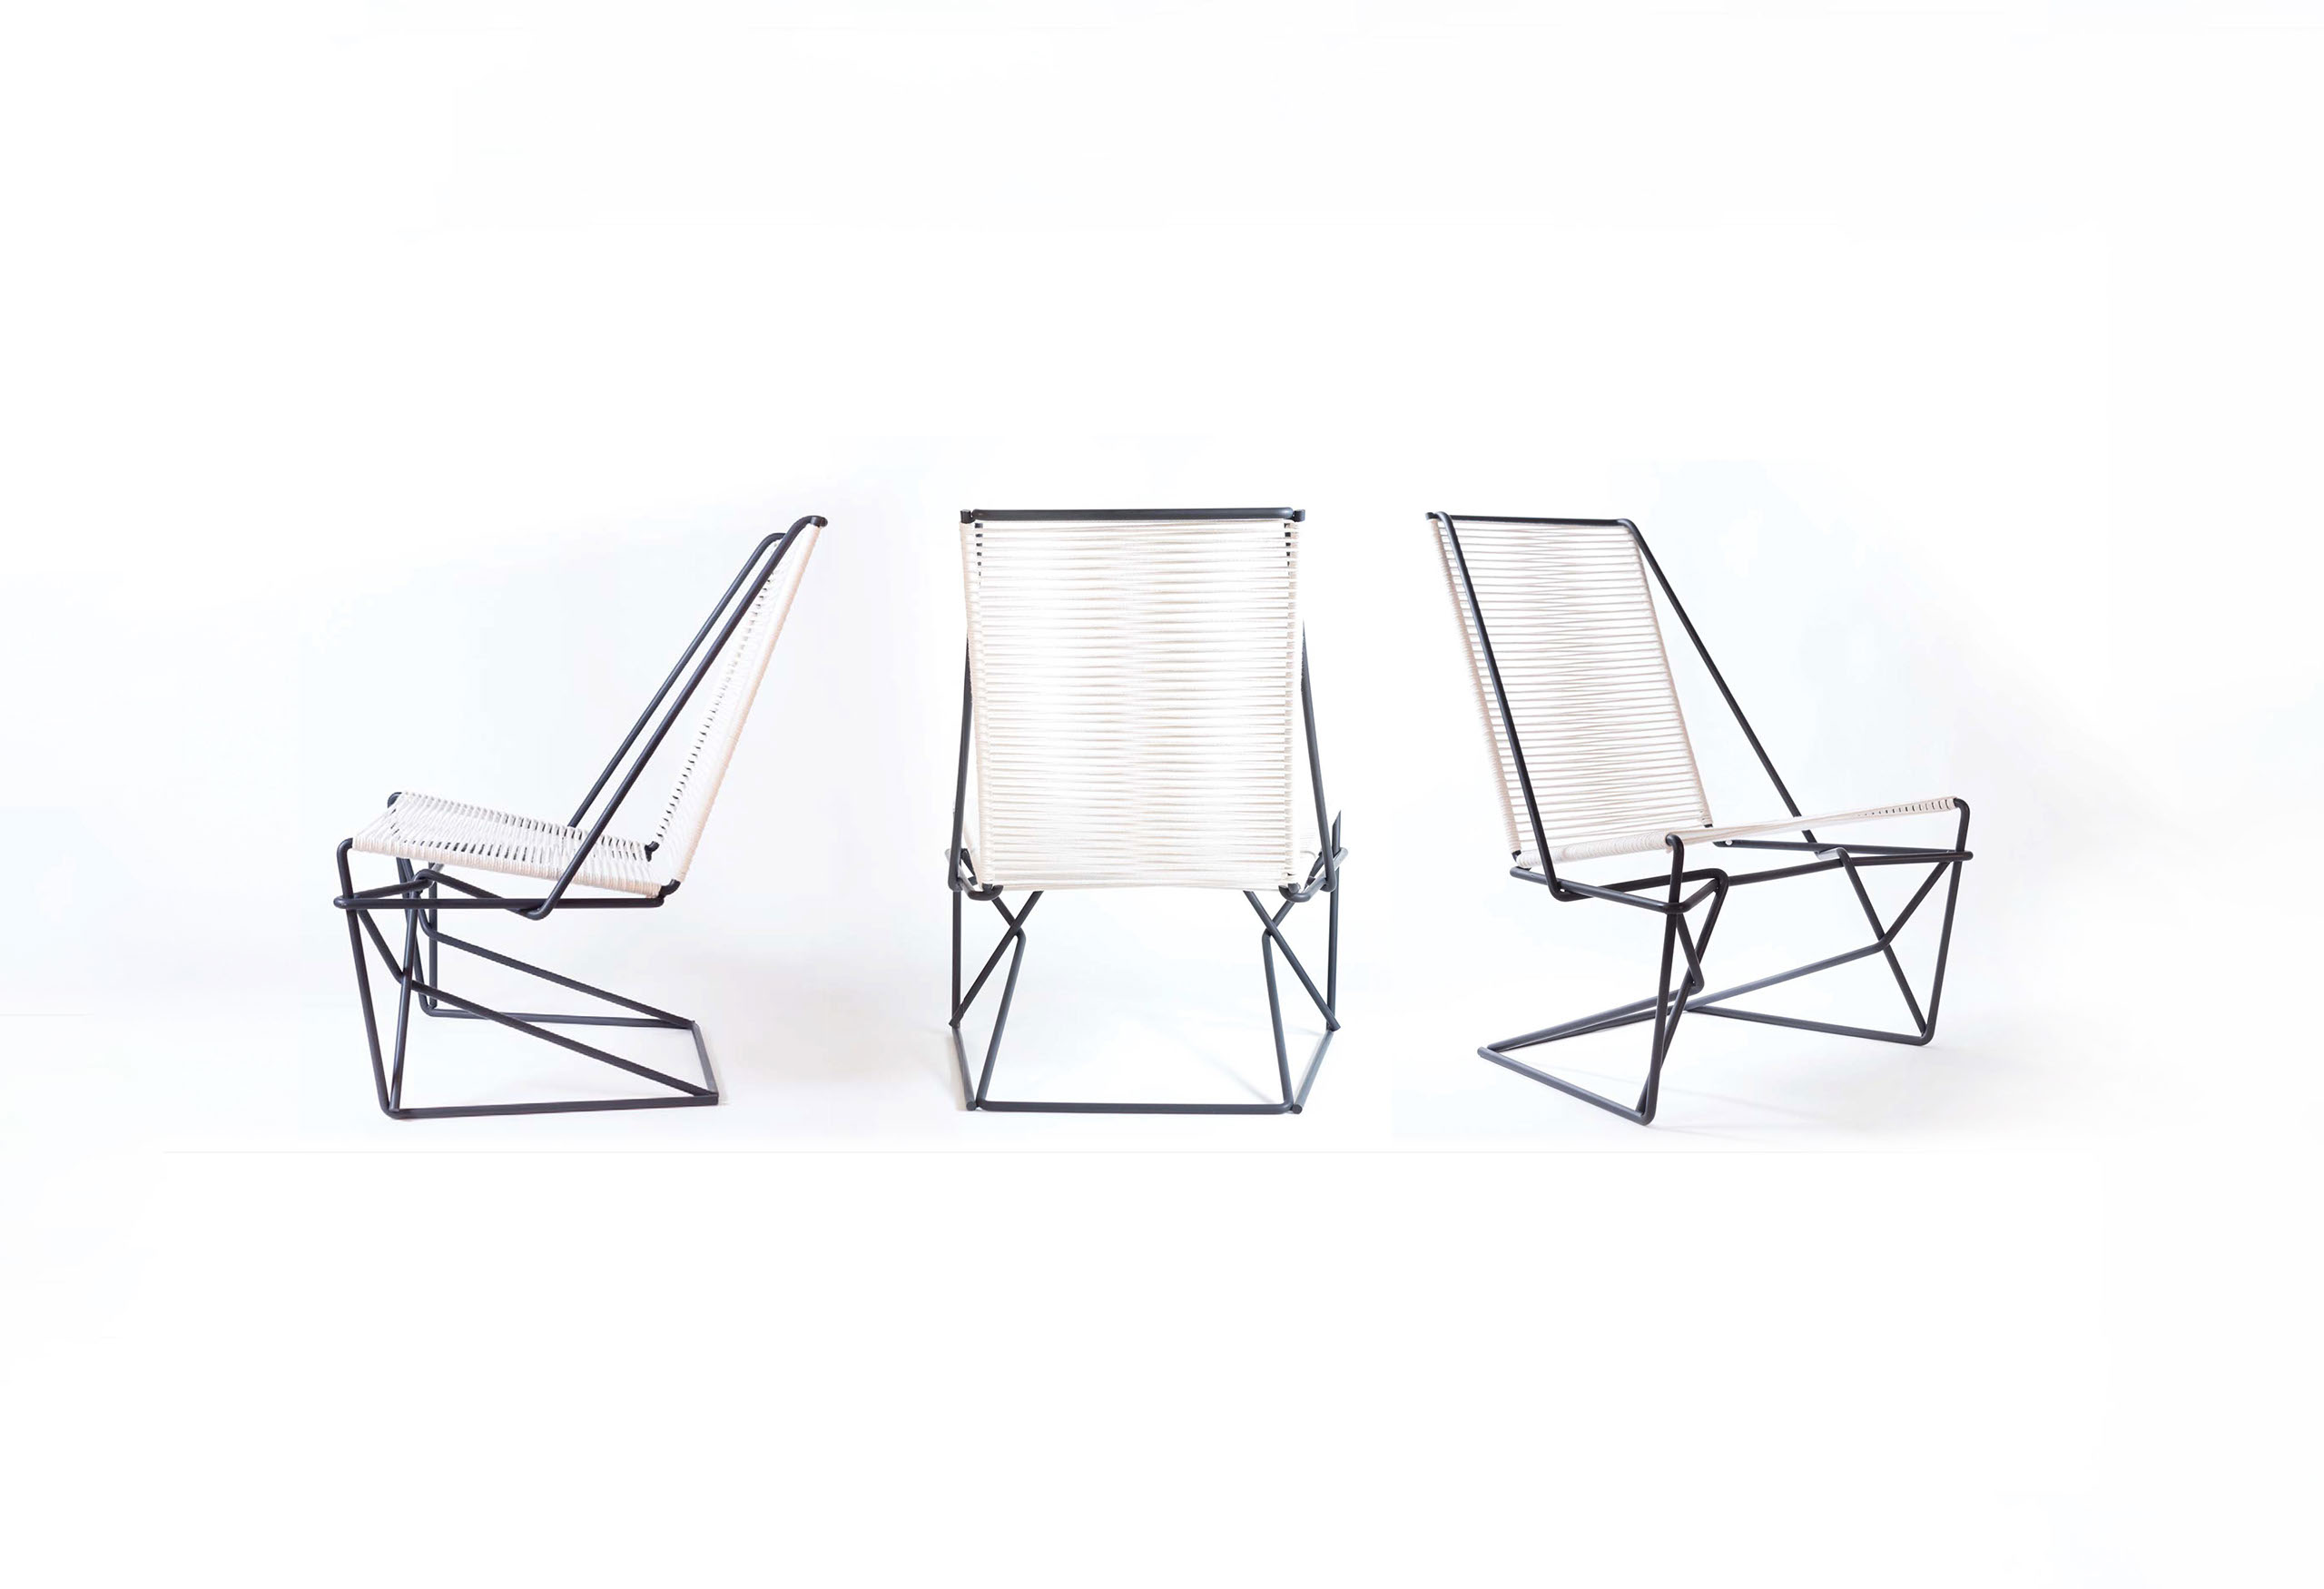 CR45 Chairs by Many Hands Design